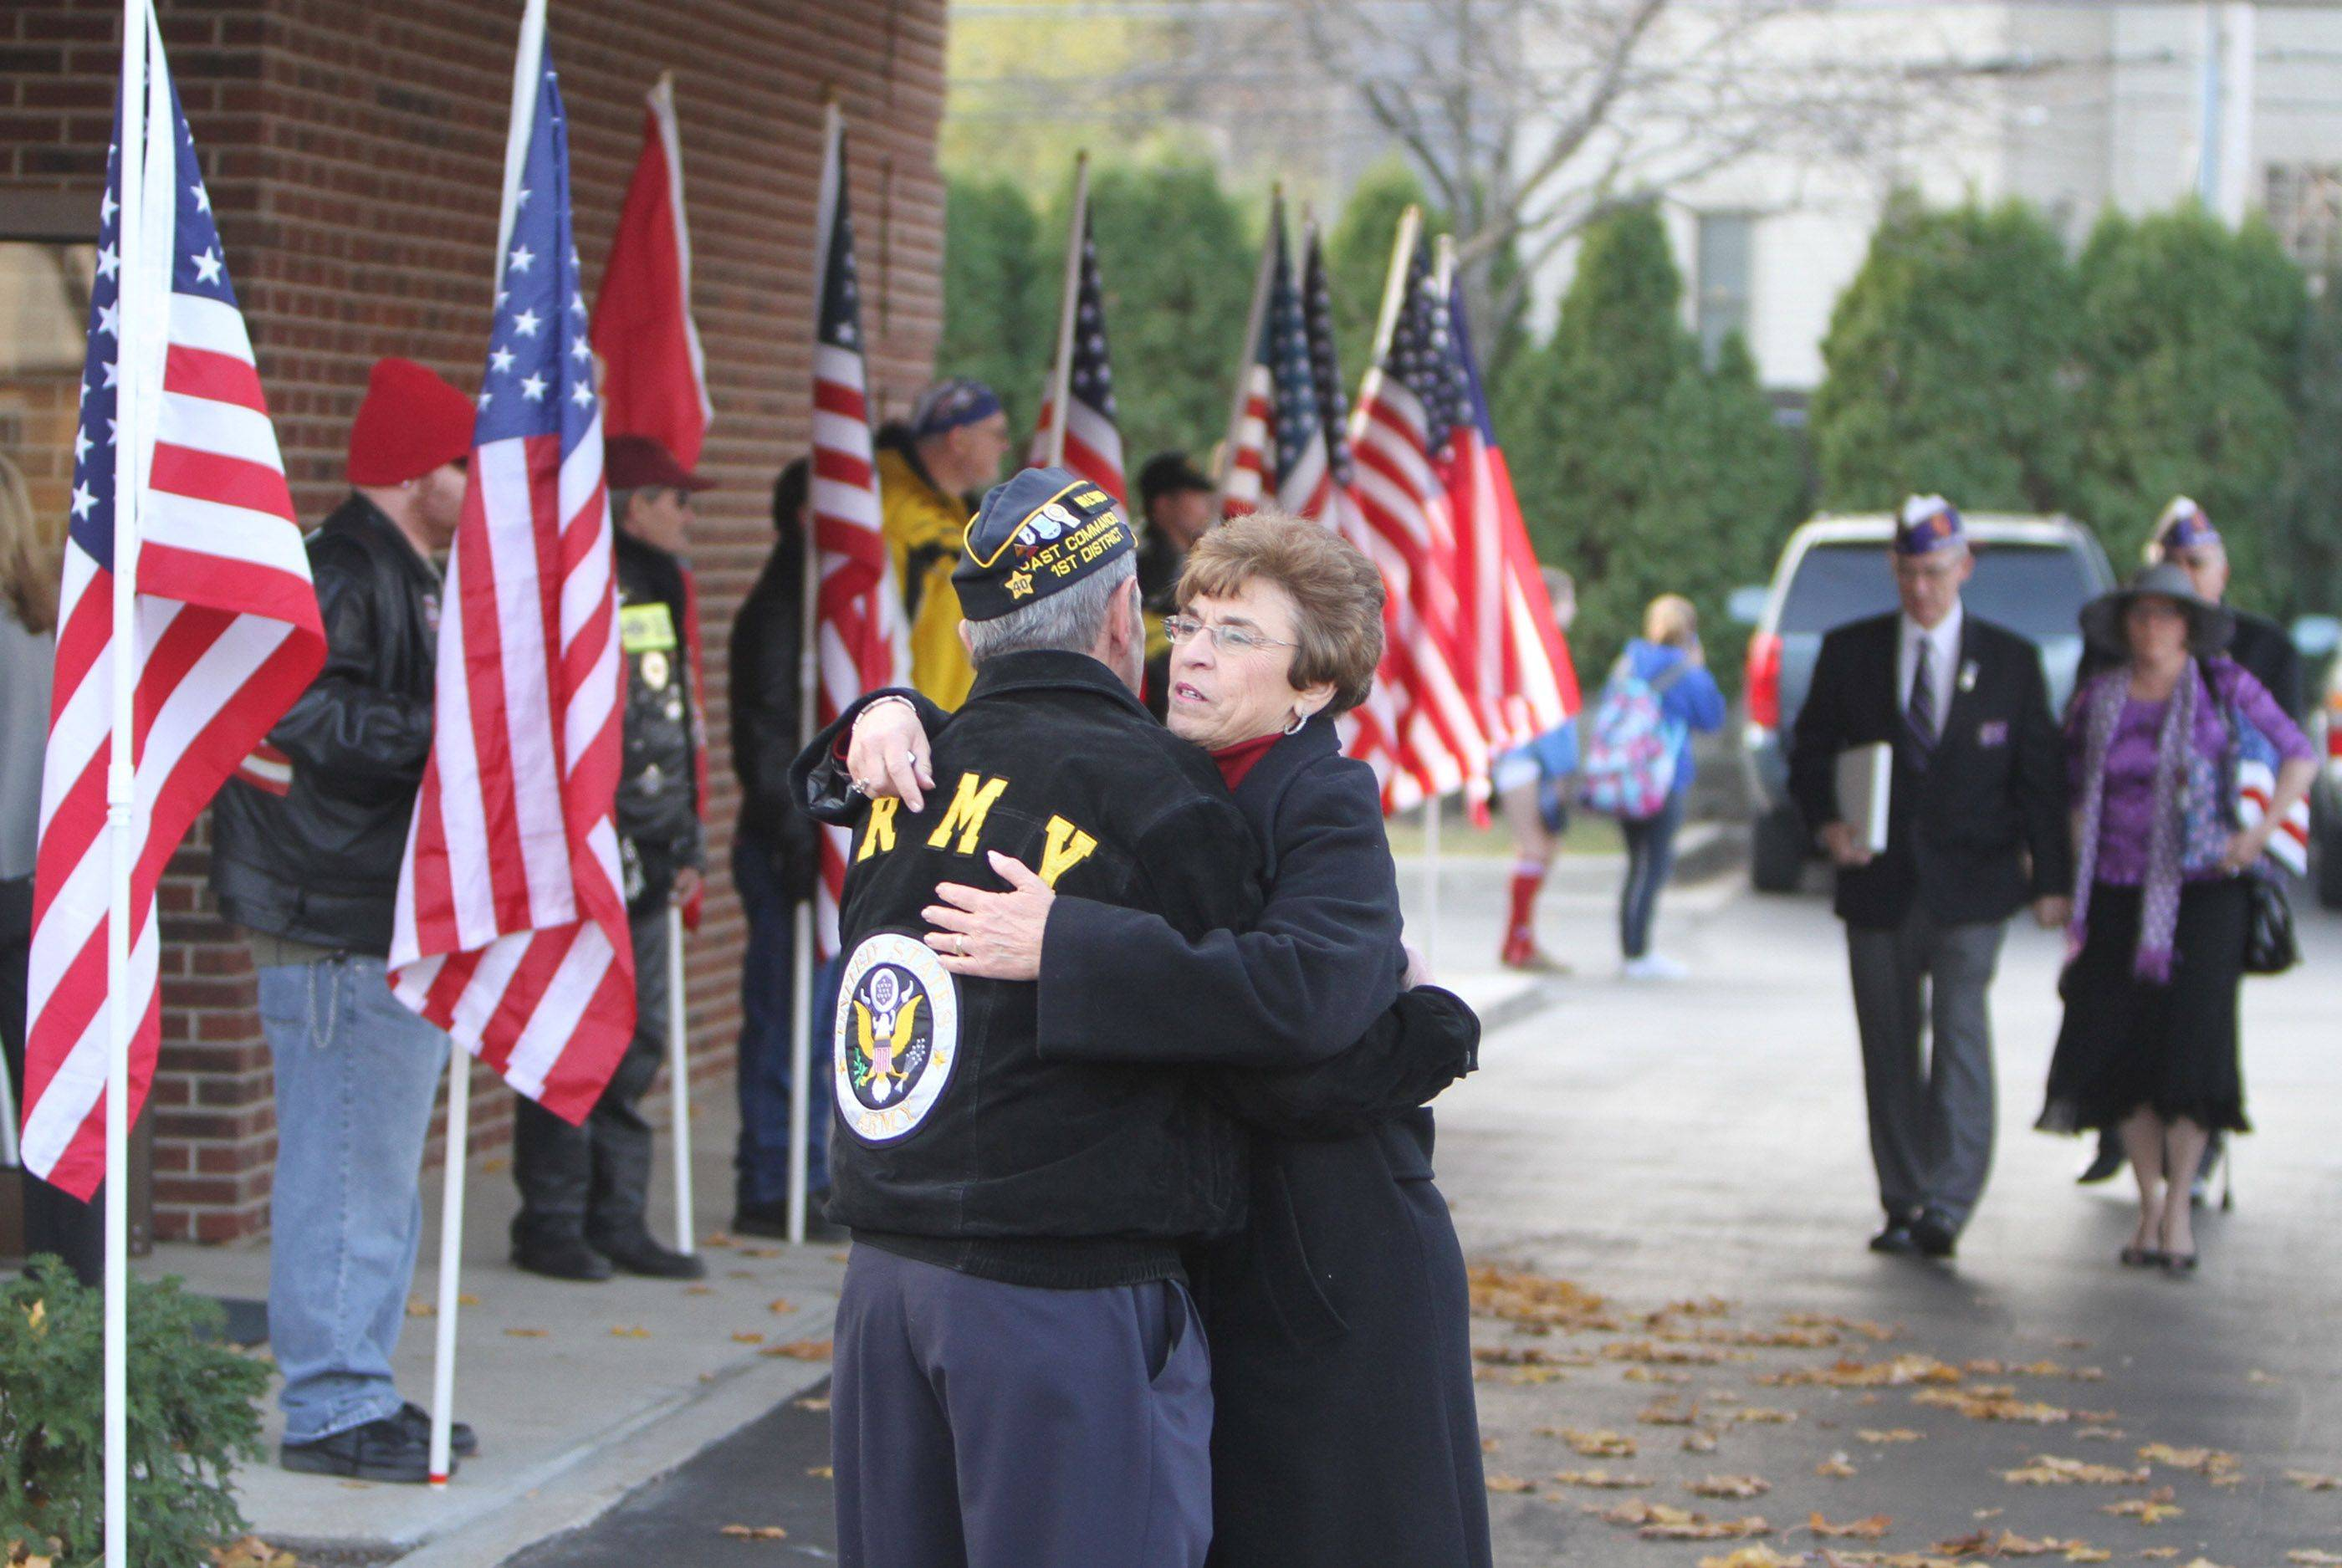 Bob Ferraro with American Legion Post 134 gives Arlington Heights Mayor Arlene Mulder a hug as she arrives at the visitation for Lance Cpl. James Stack.